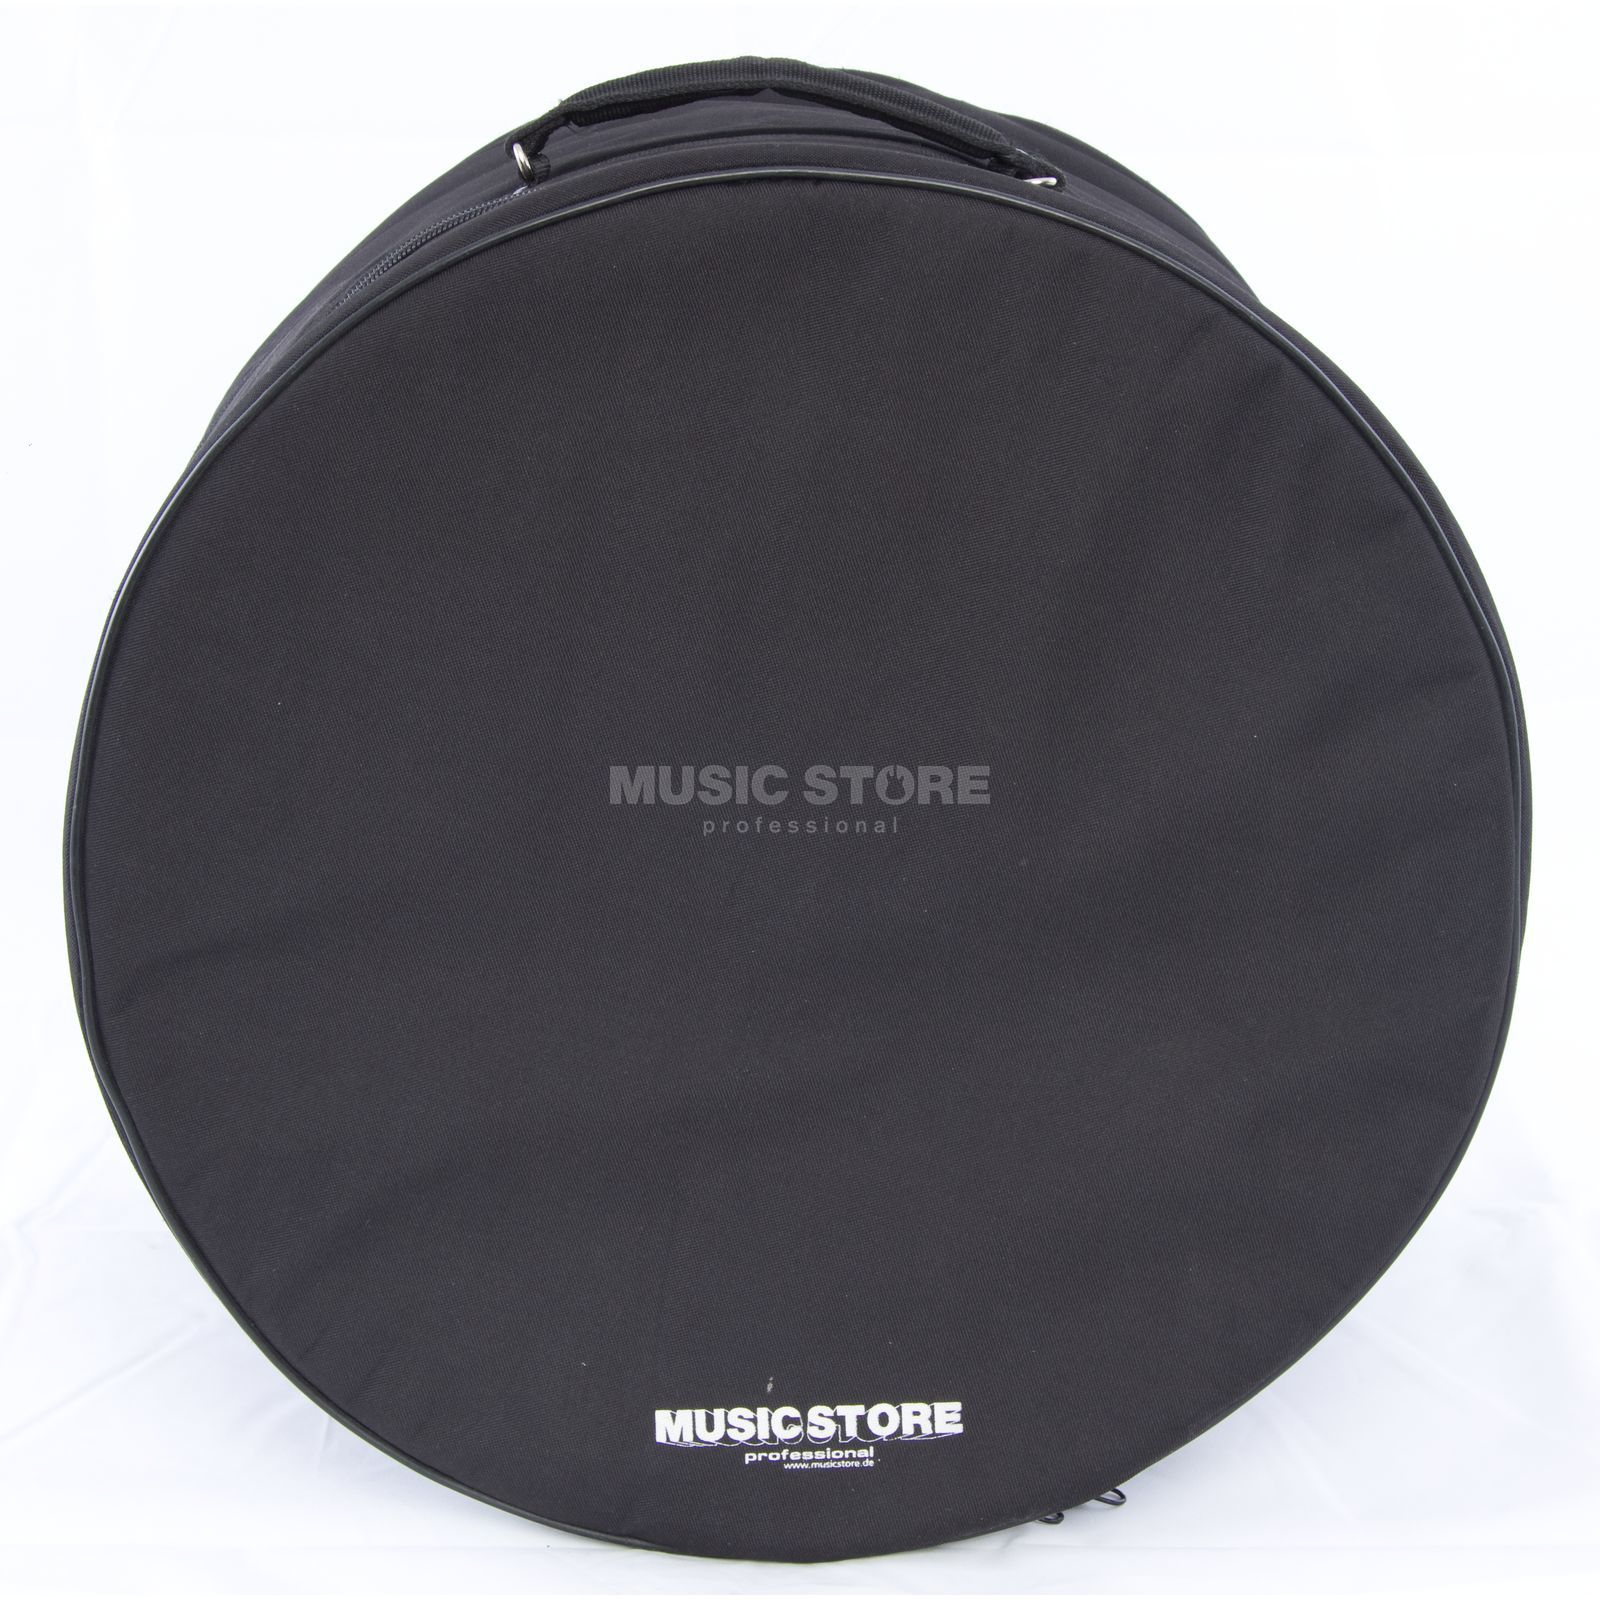 "MUSIC STORE DC2218 Pro II Drumbag for 22x18"" Toms Product Image"